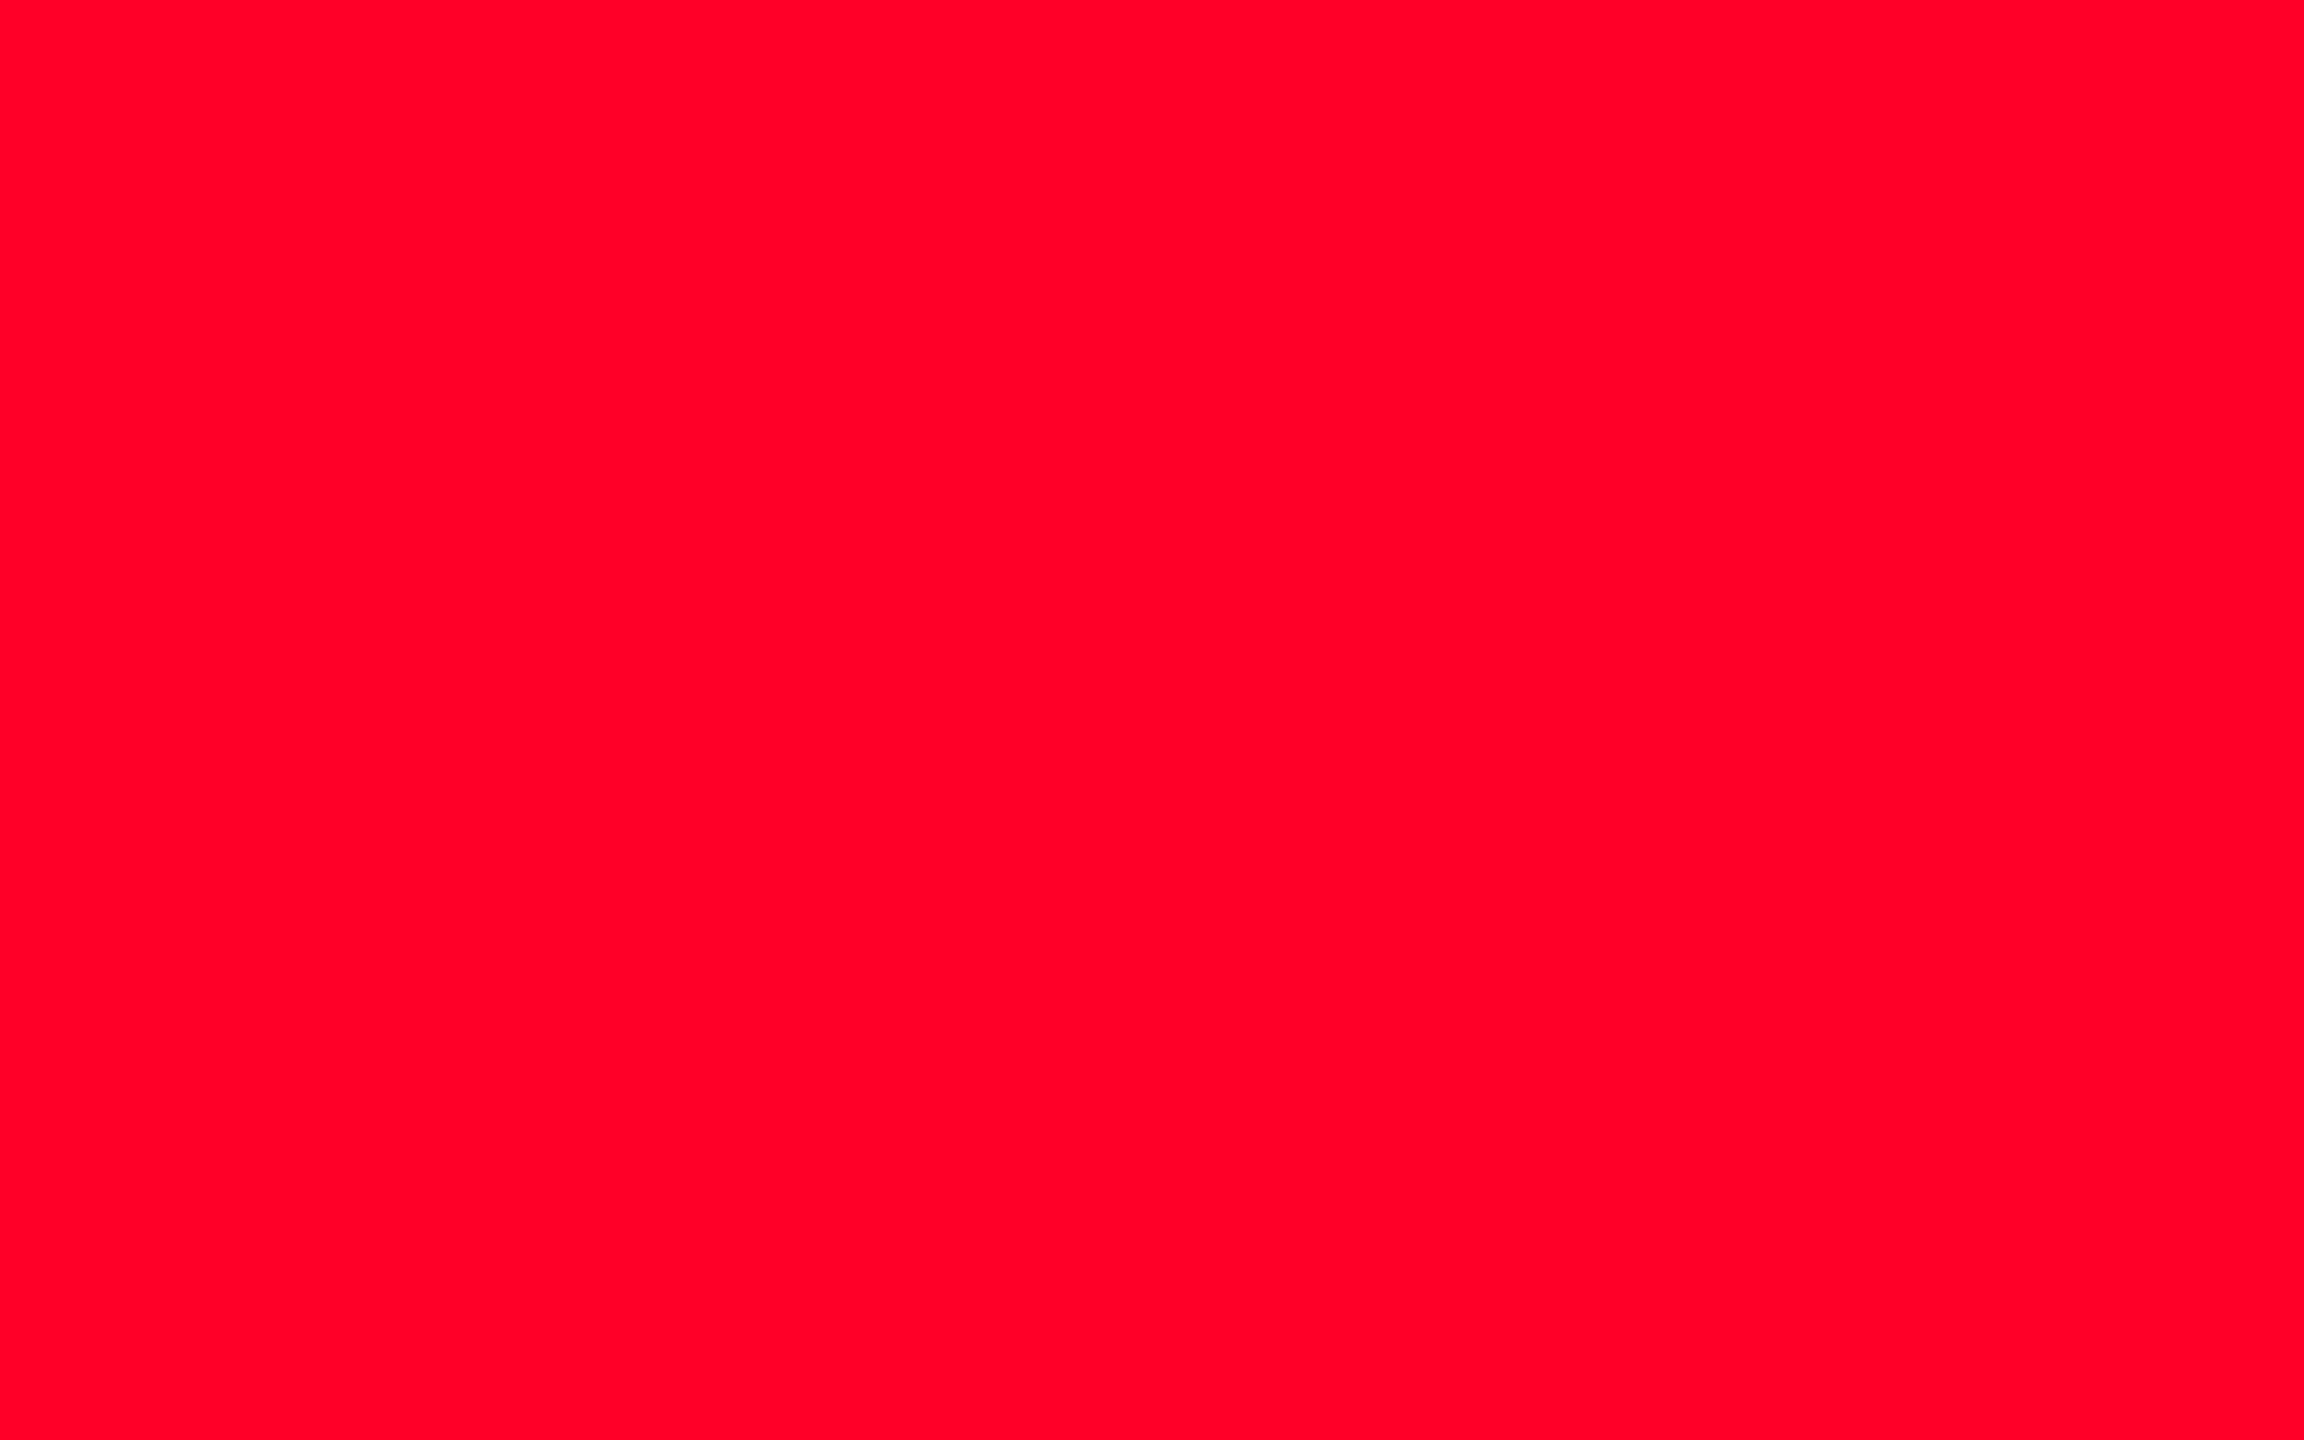 2304x1440 Ruddy Solid Color Background